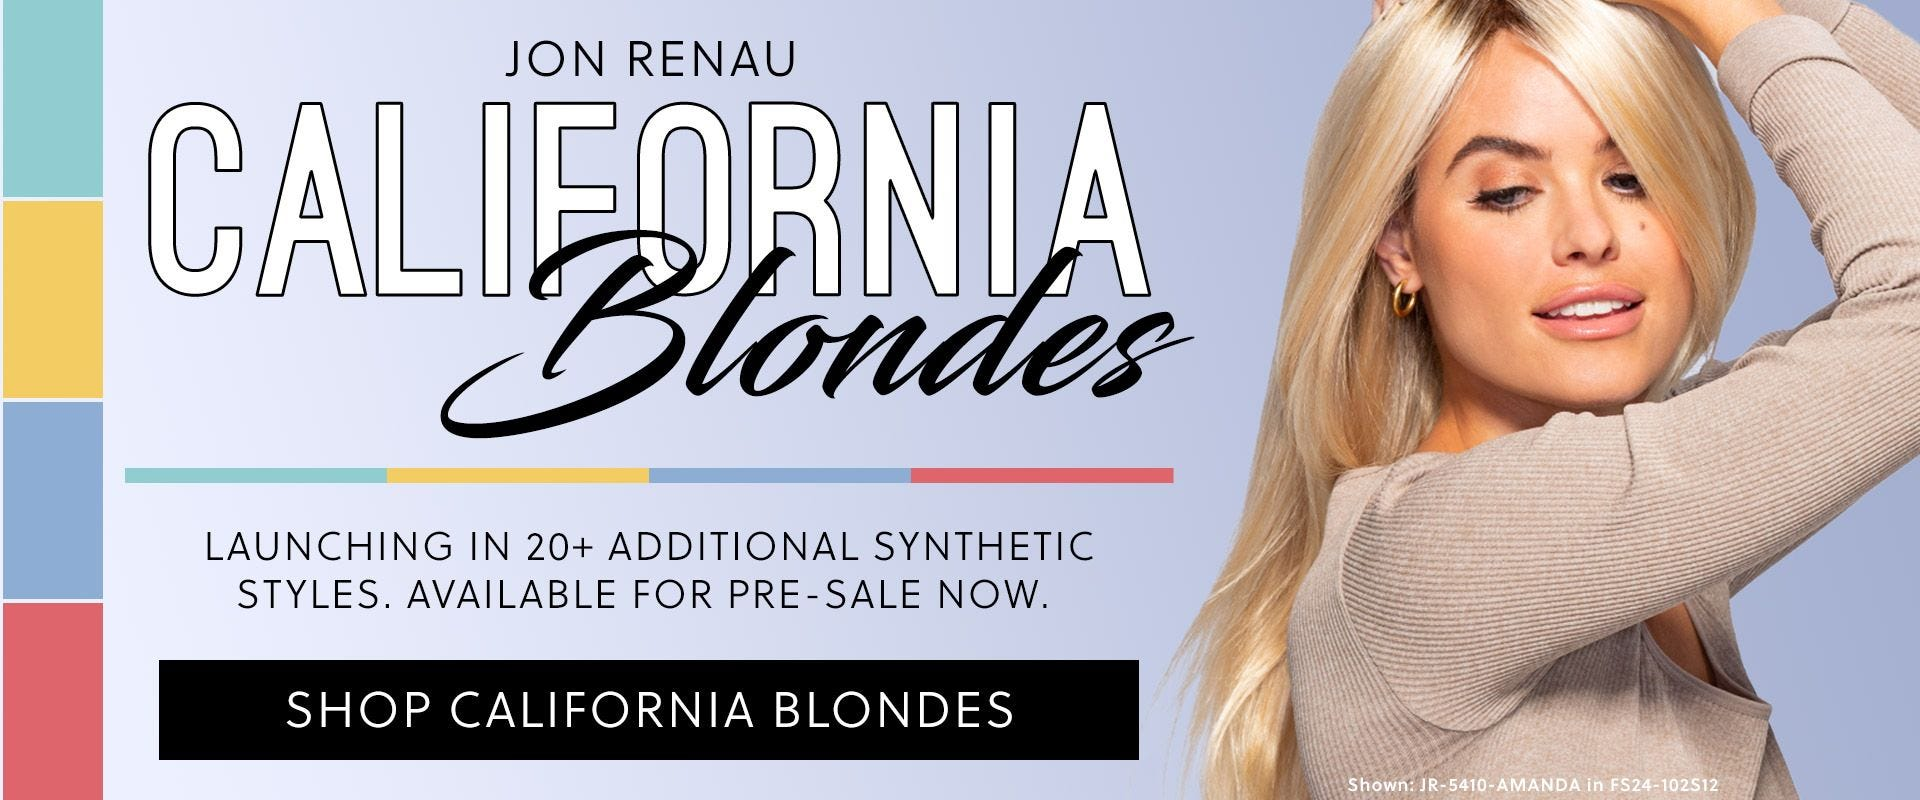 Jon Renau California Blondes Expansion Fall 2021 - Now Available For Pre-Sale